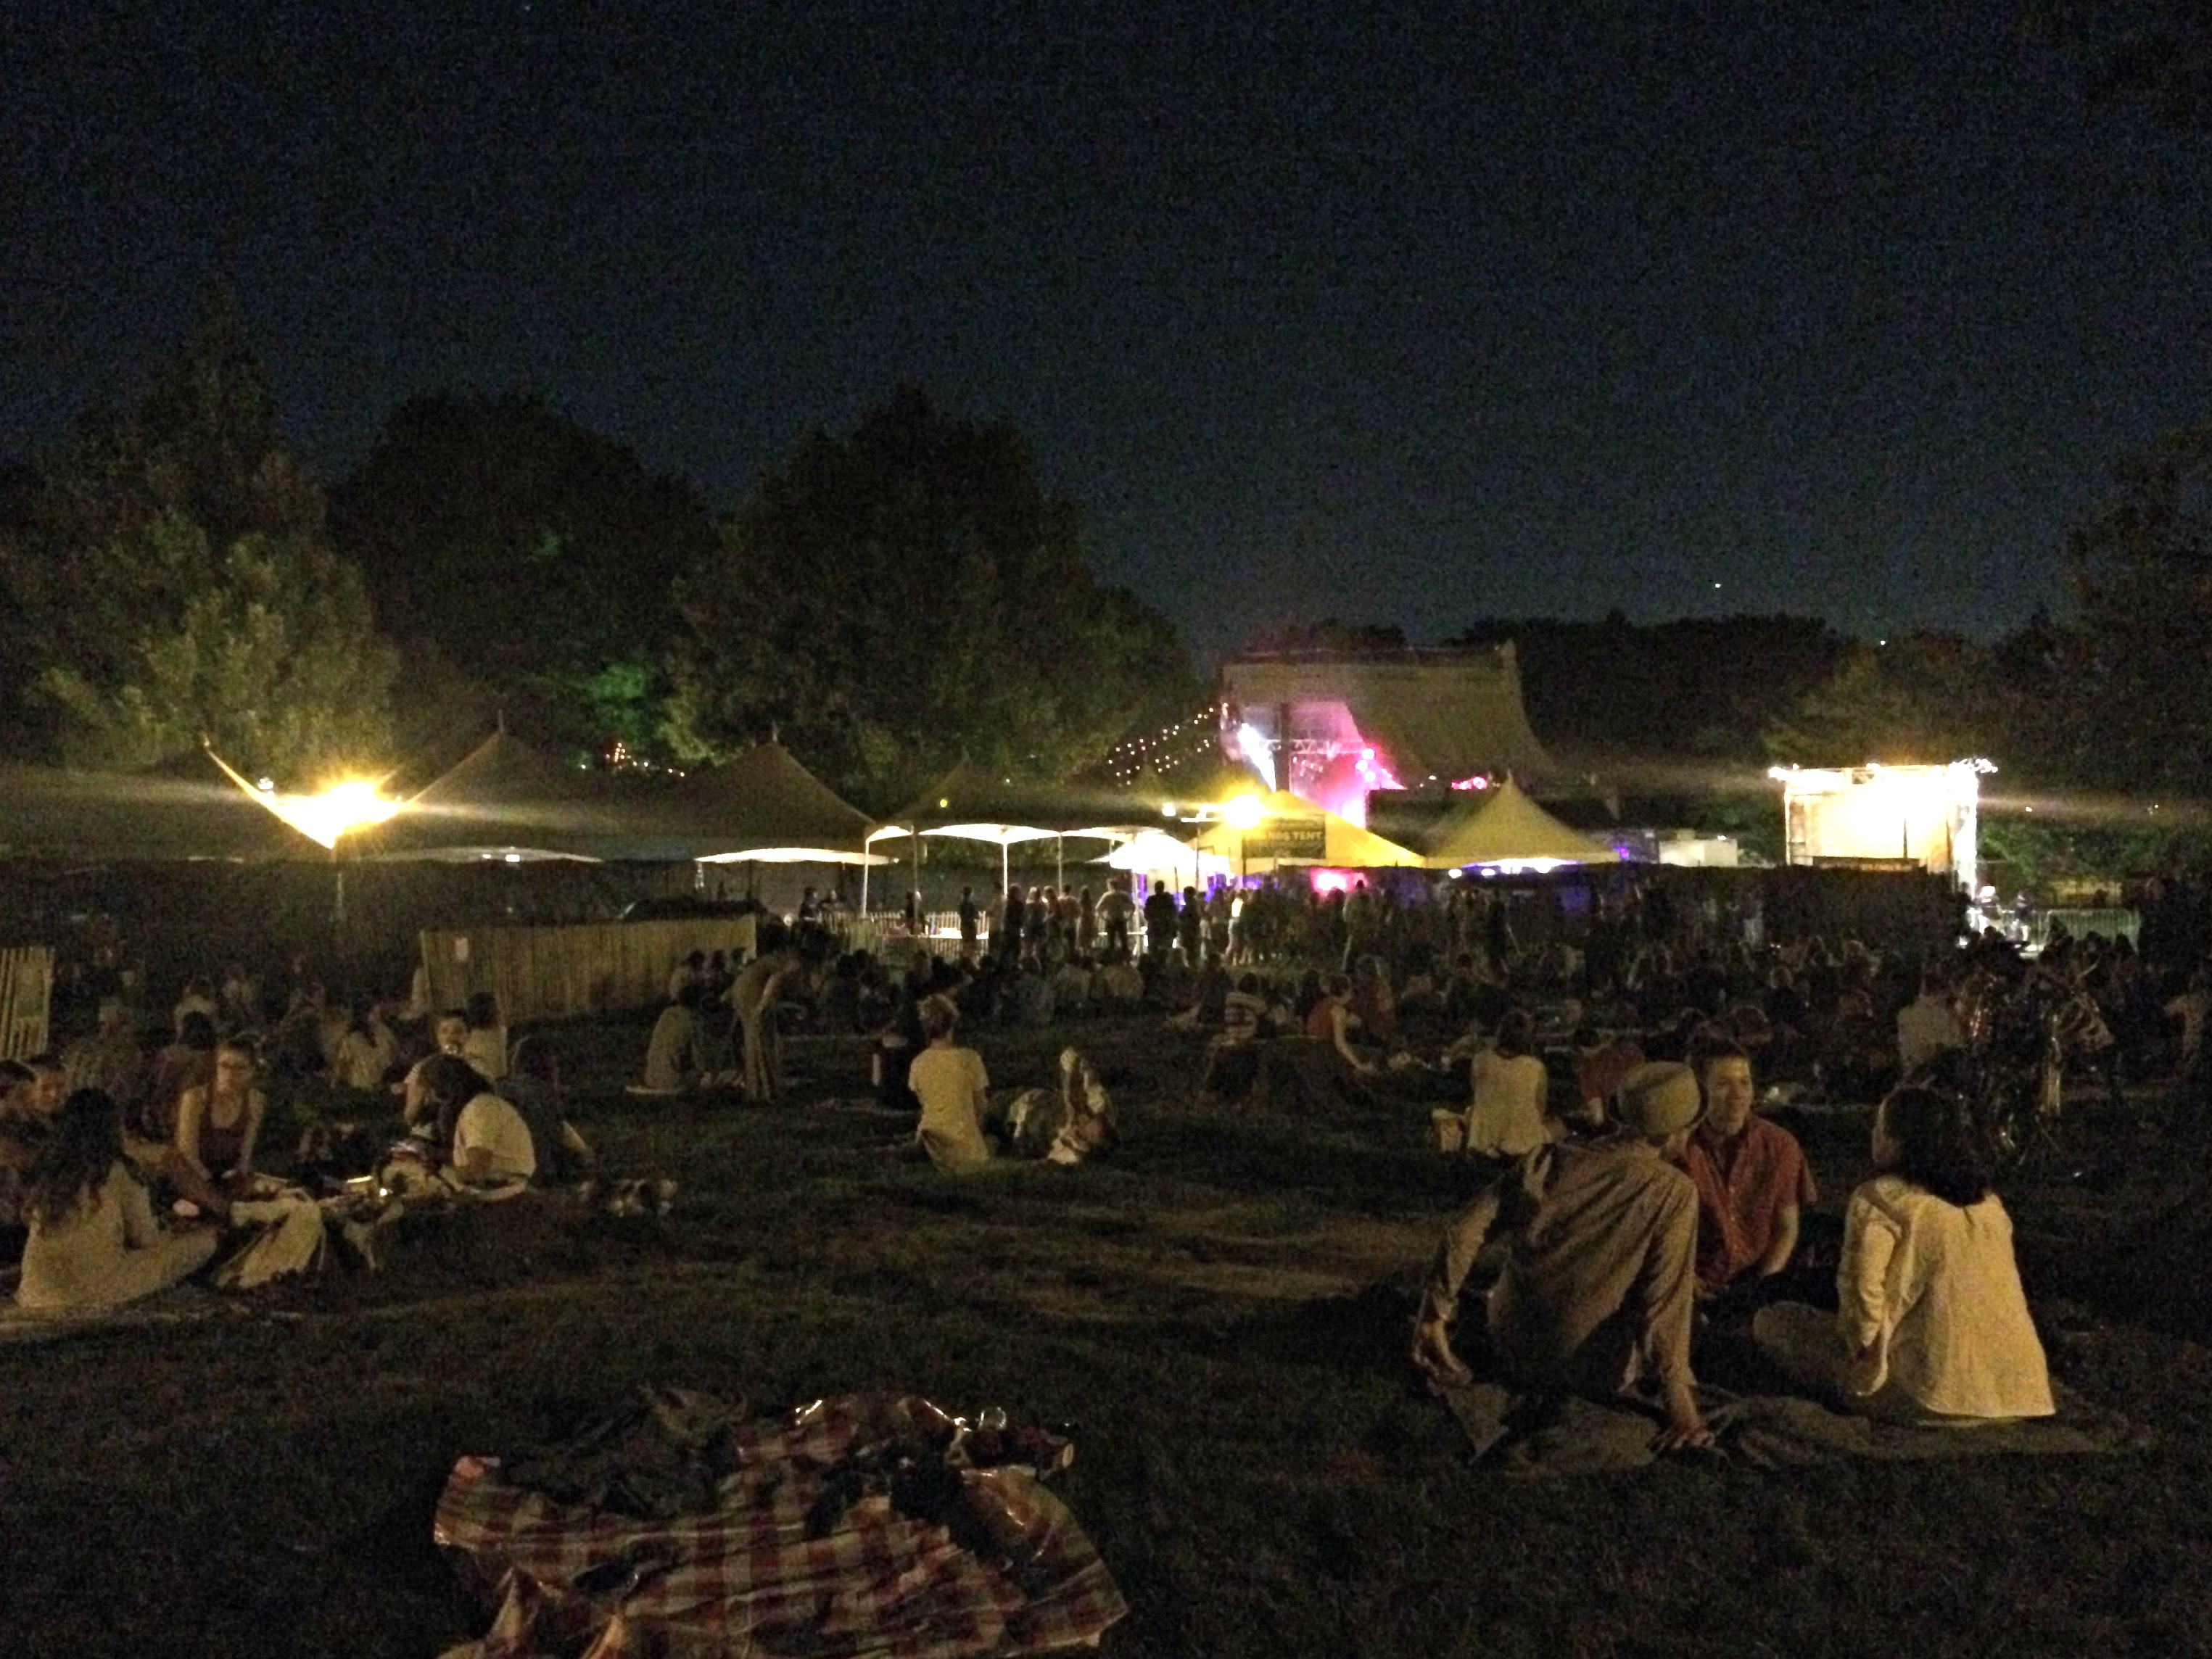 concerts in prospect park, brooklyn